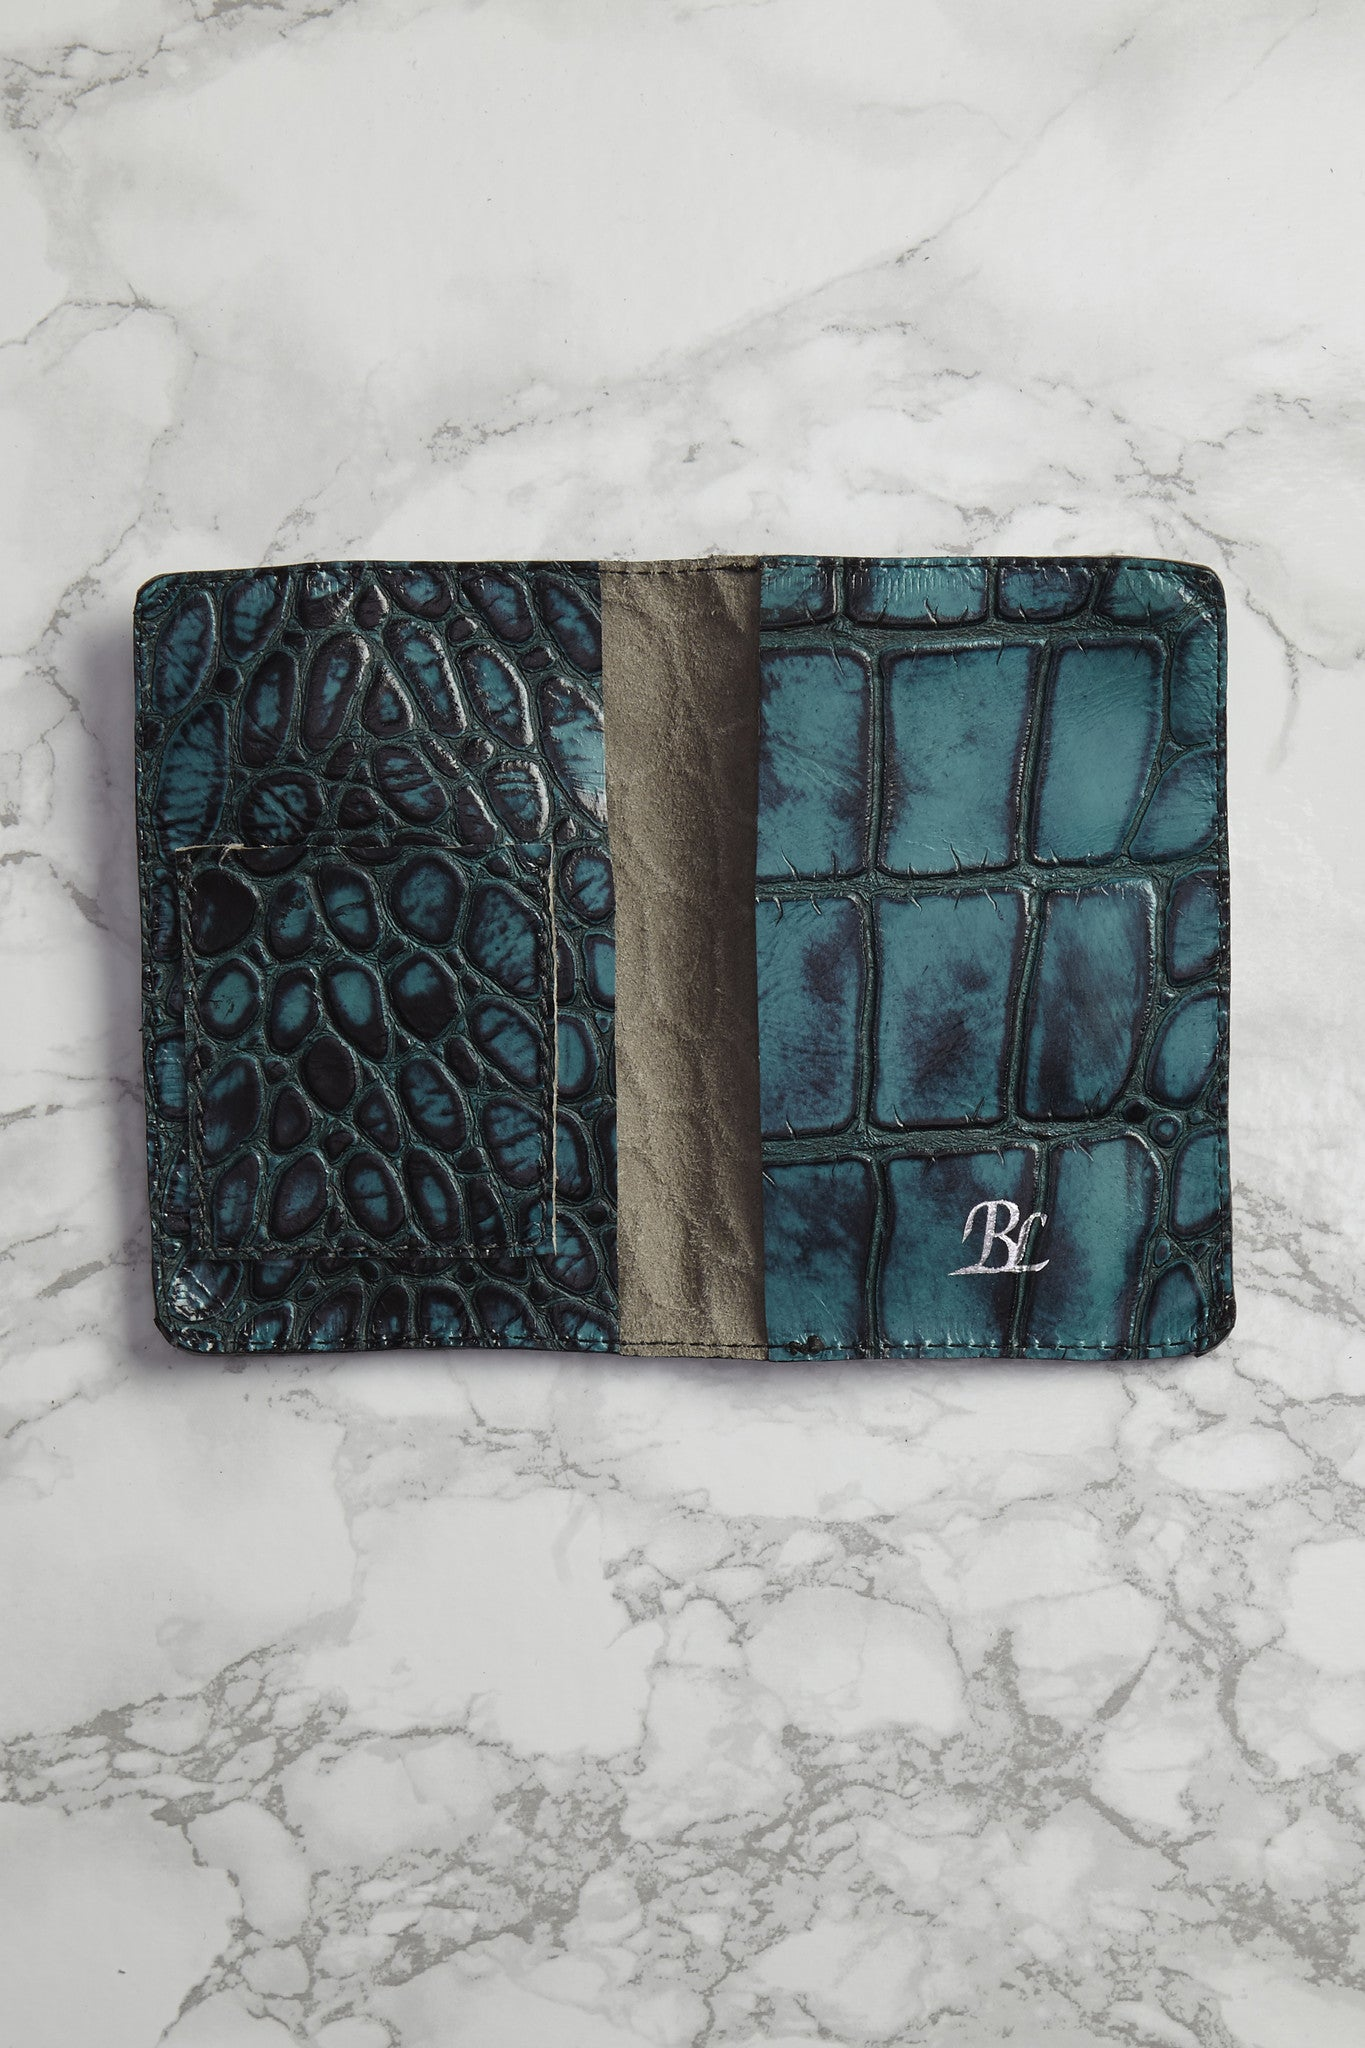 BLYTHE LEONARD Aqua Croc Passport Cover Accessories | Aqua Blue| Blythe Leonard Aqua Croc Passport Cover